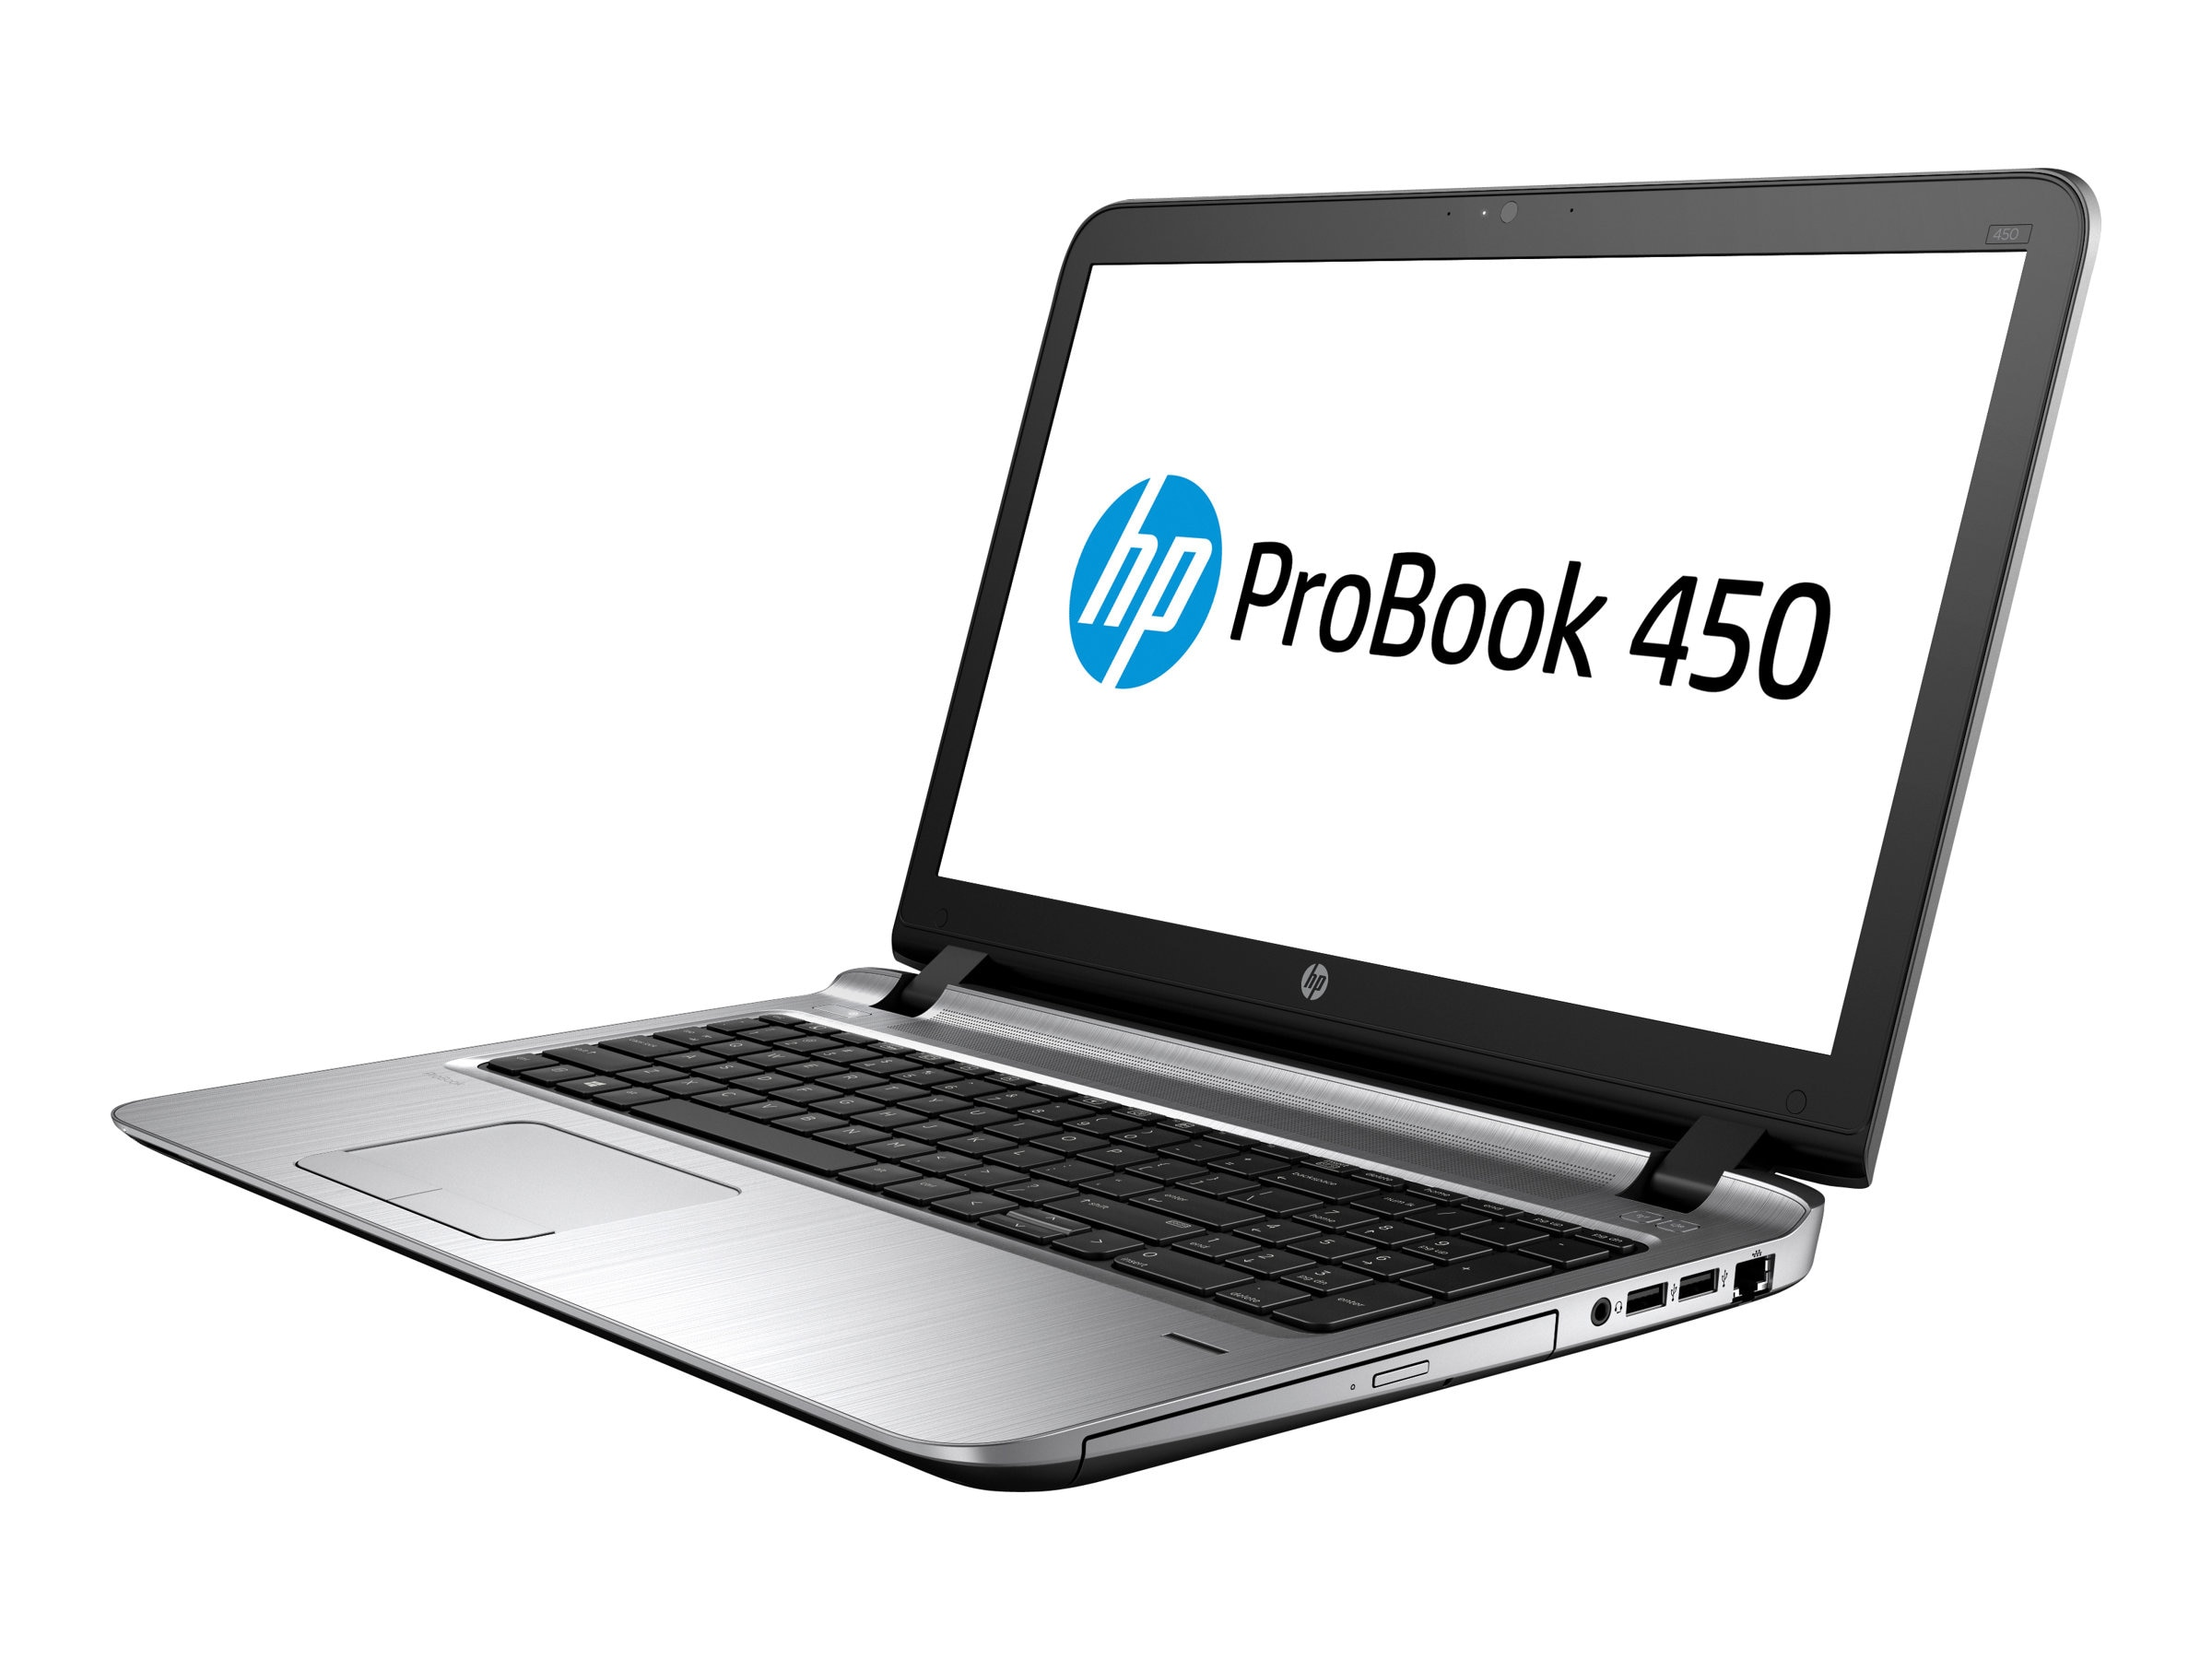 HP ProBook 450 G3 2.5GHz Core i7 15.6in display, W0S82UT#ABA